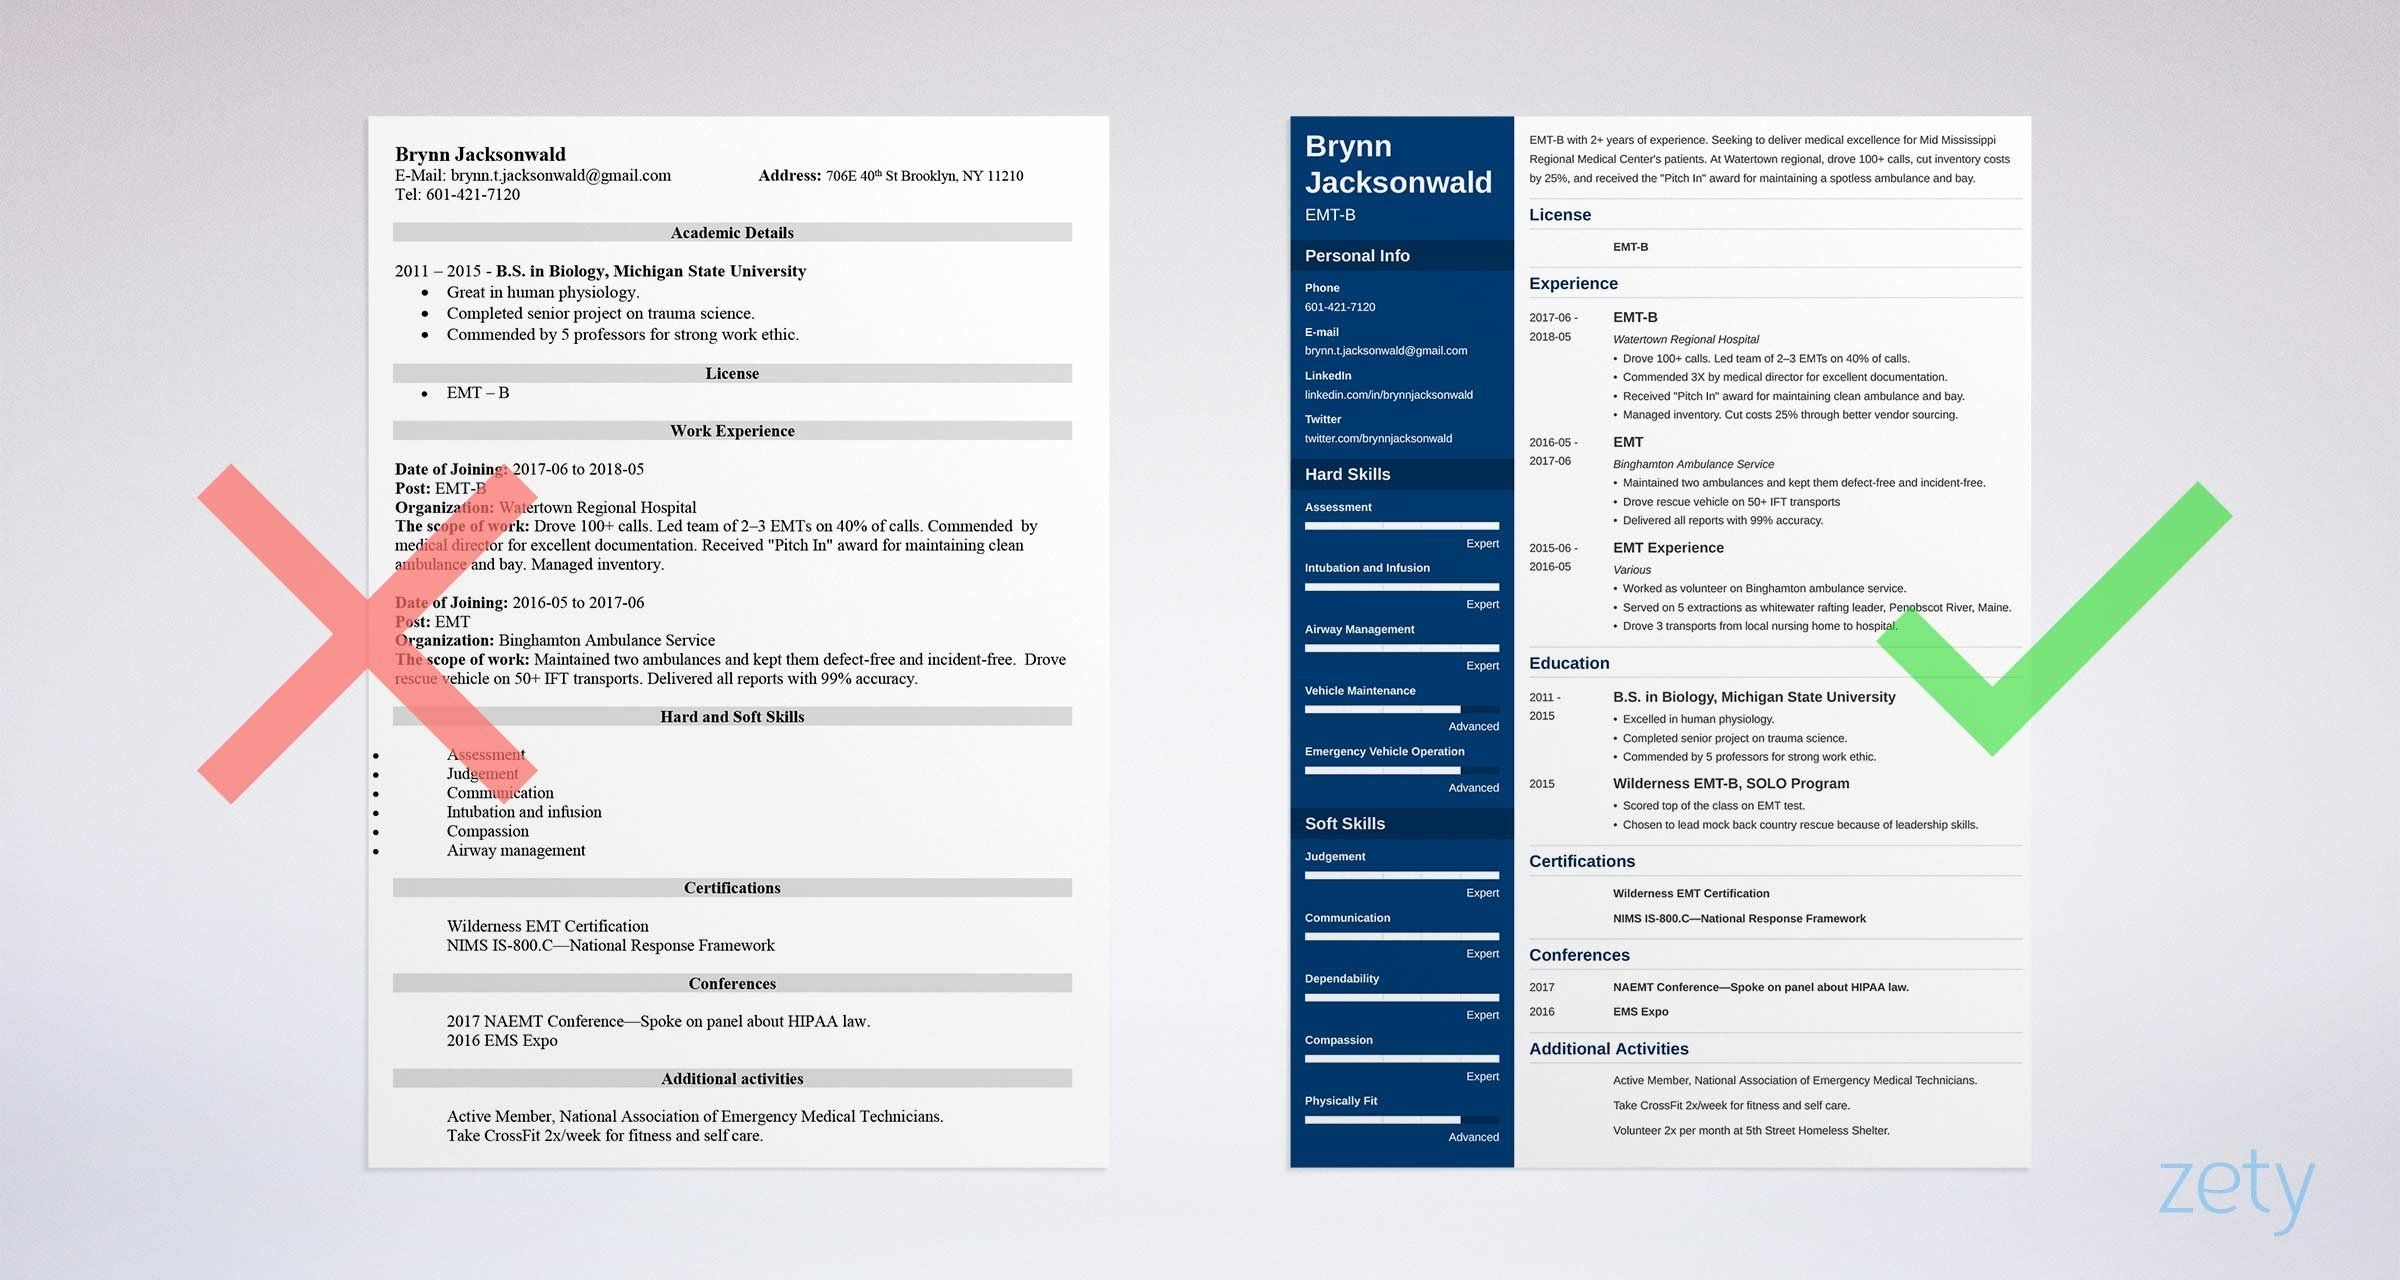 emt paramedic resume samples ems tips free templates example self summary for sample best Resume Free Emt Resume Templates